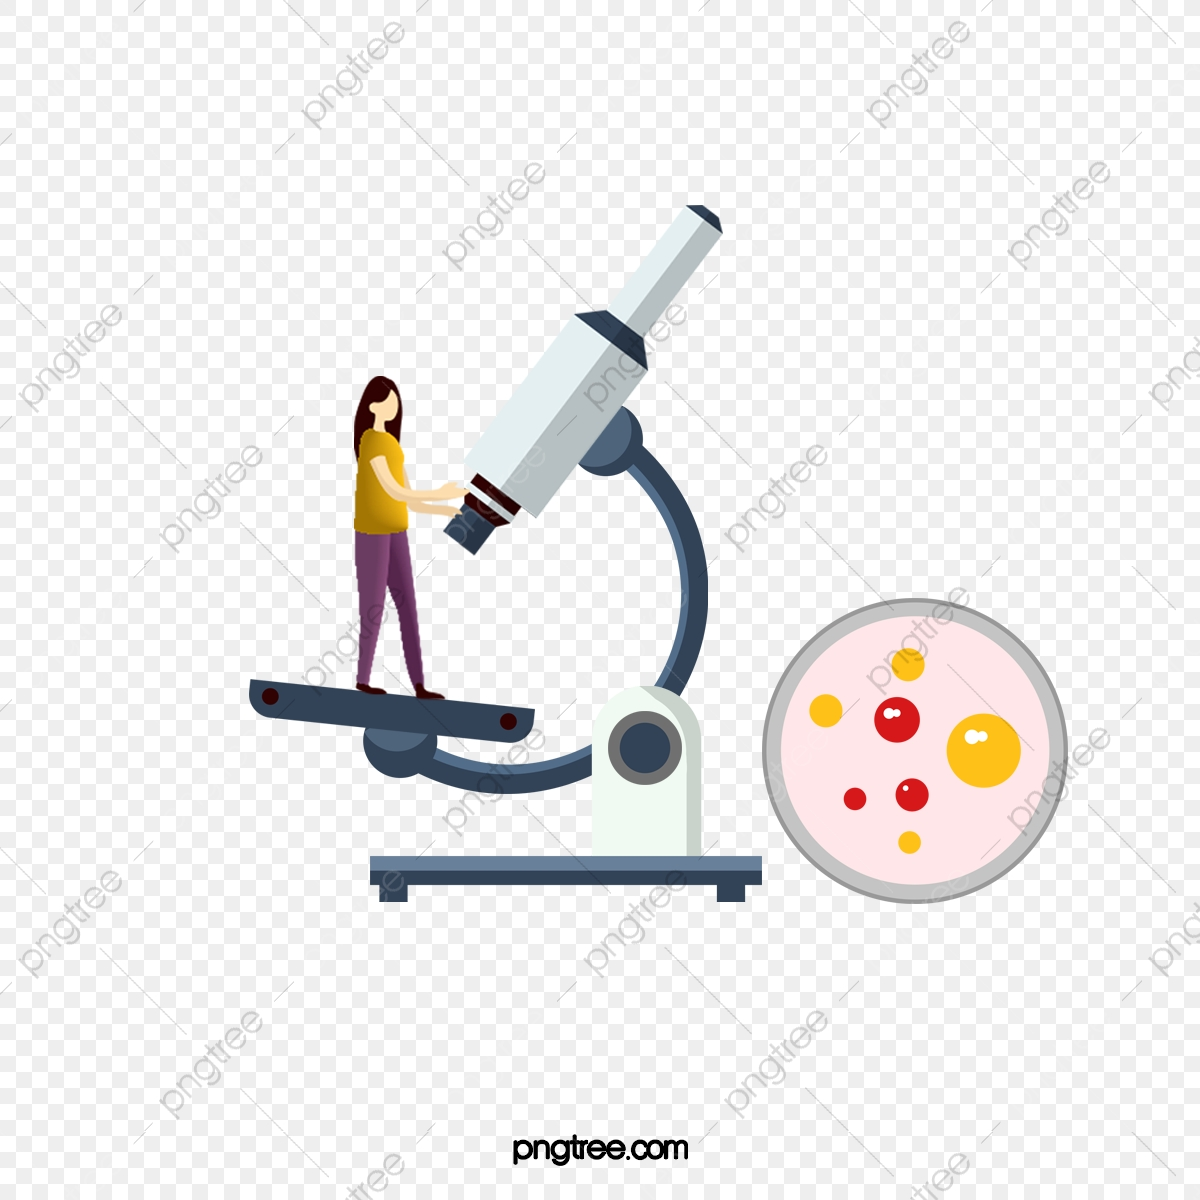 microscope cartoon hand drawn experiment illustration experiment bacteria cartoon png transparent clipart image and psd file for free download https pngtree com freepng microscope cartoon hand drawn experiment illustration 4962264 html